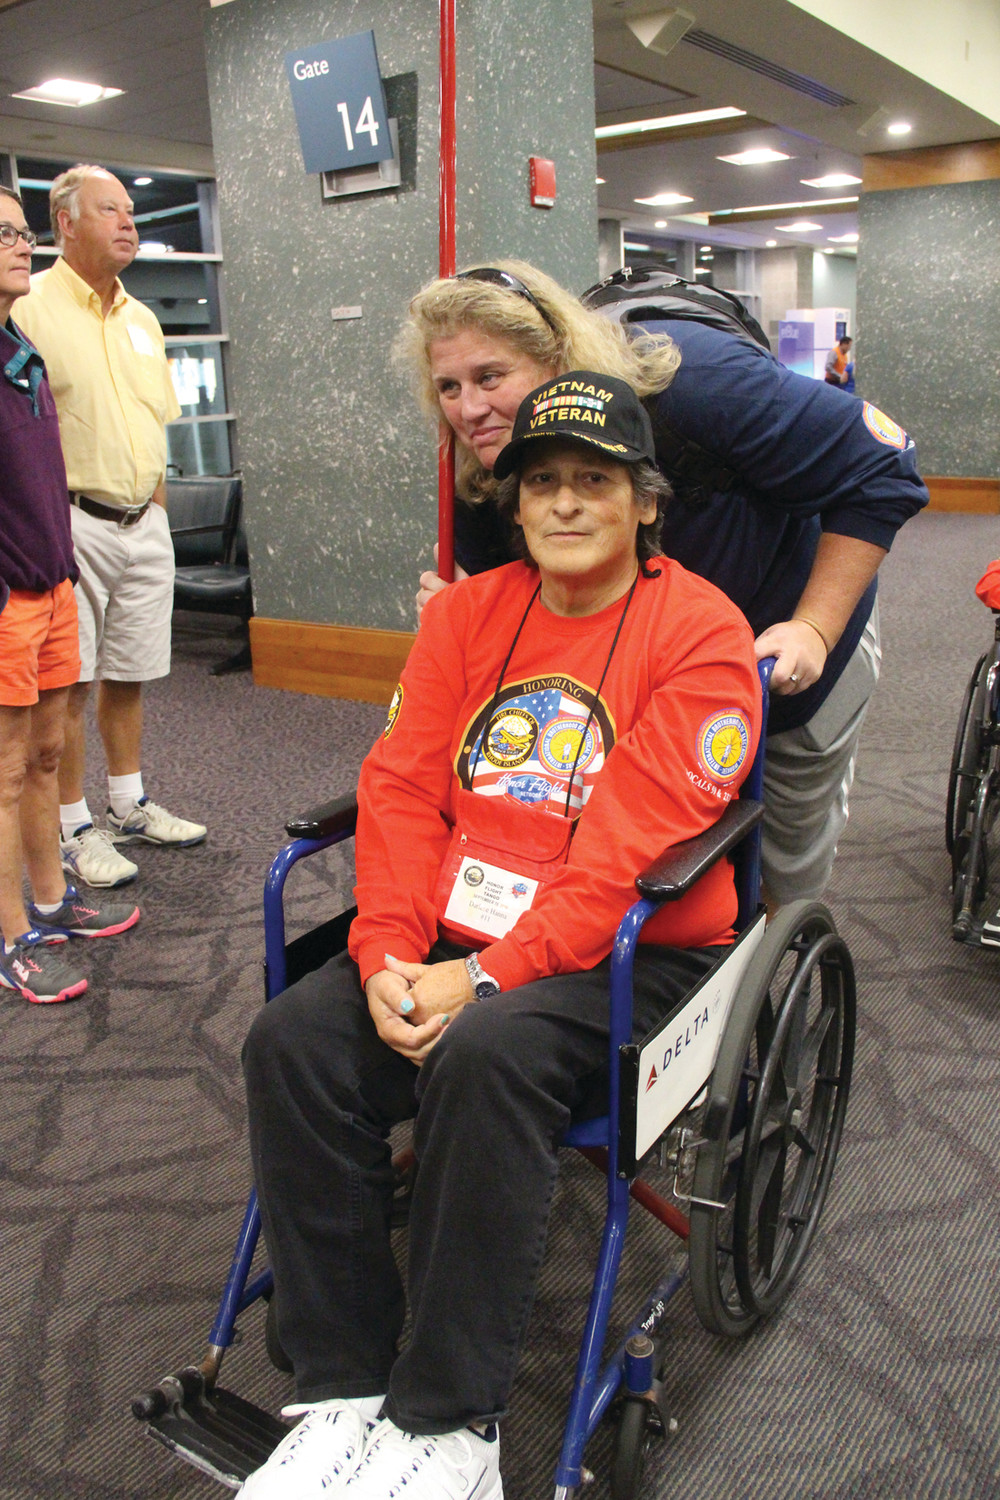 ON TO WASHINGTON: Vietnam veteran Darlene Hanna of Johnston was accompanied by Kimberly Wineman on Saturday's Honor Flight to the Nation's Capital.